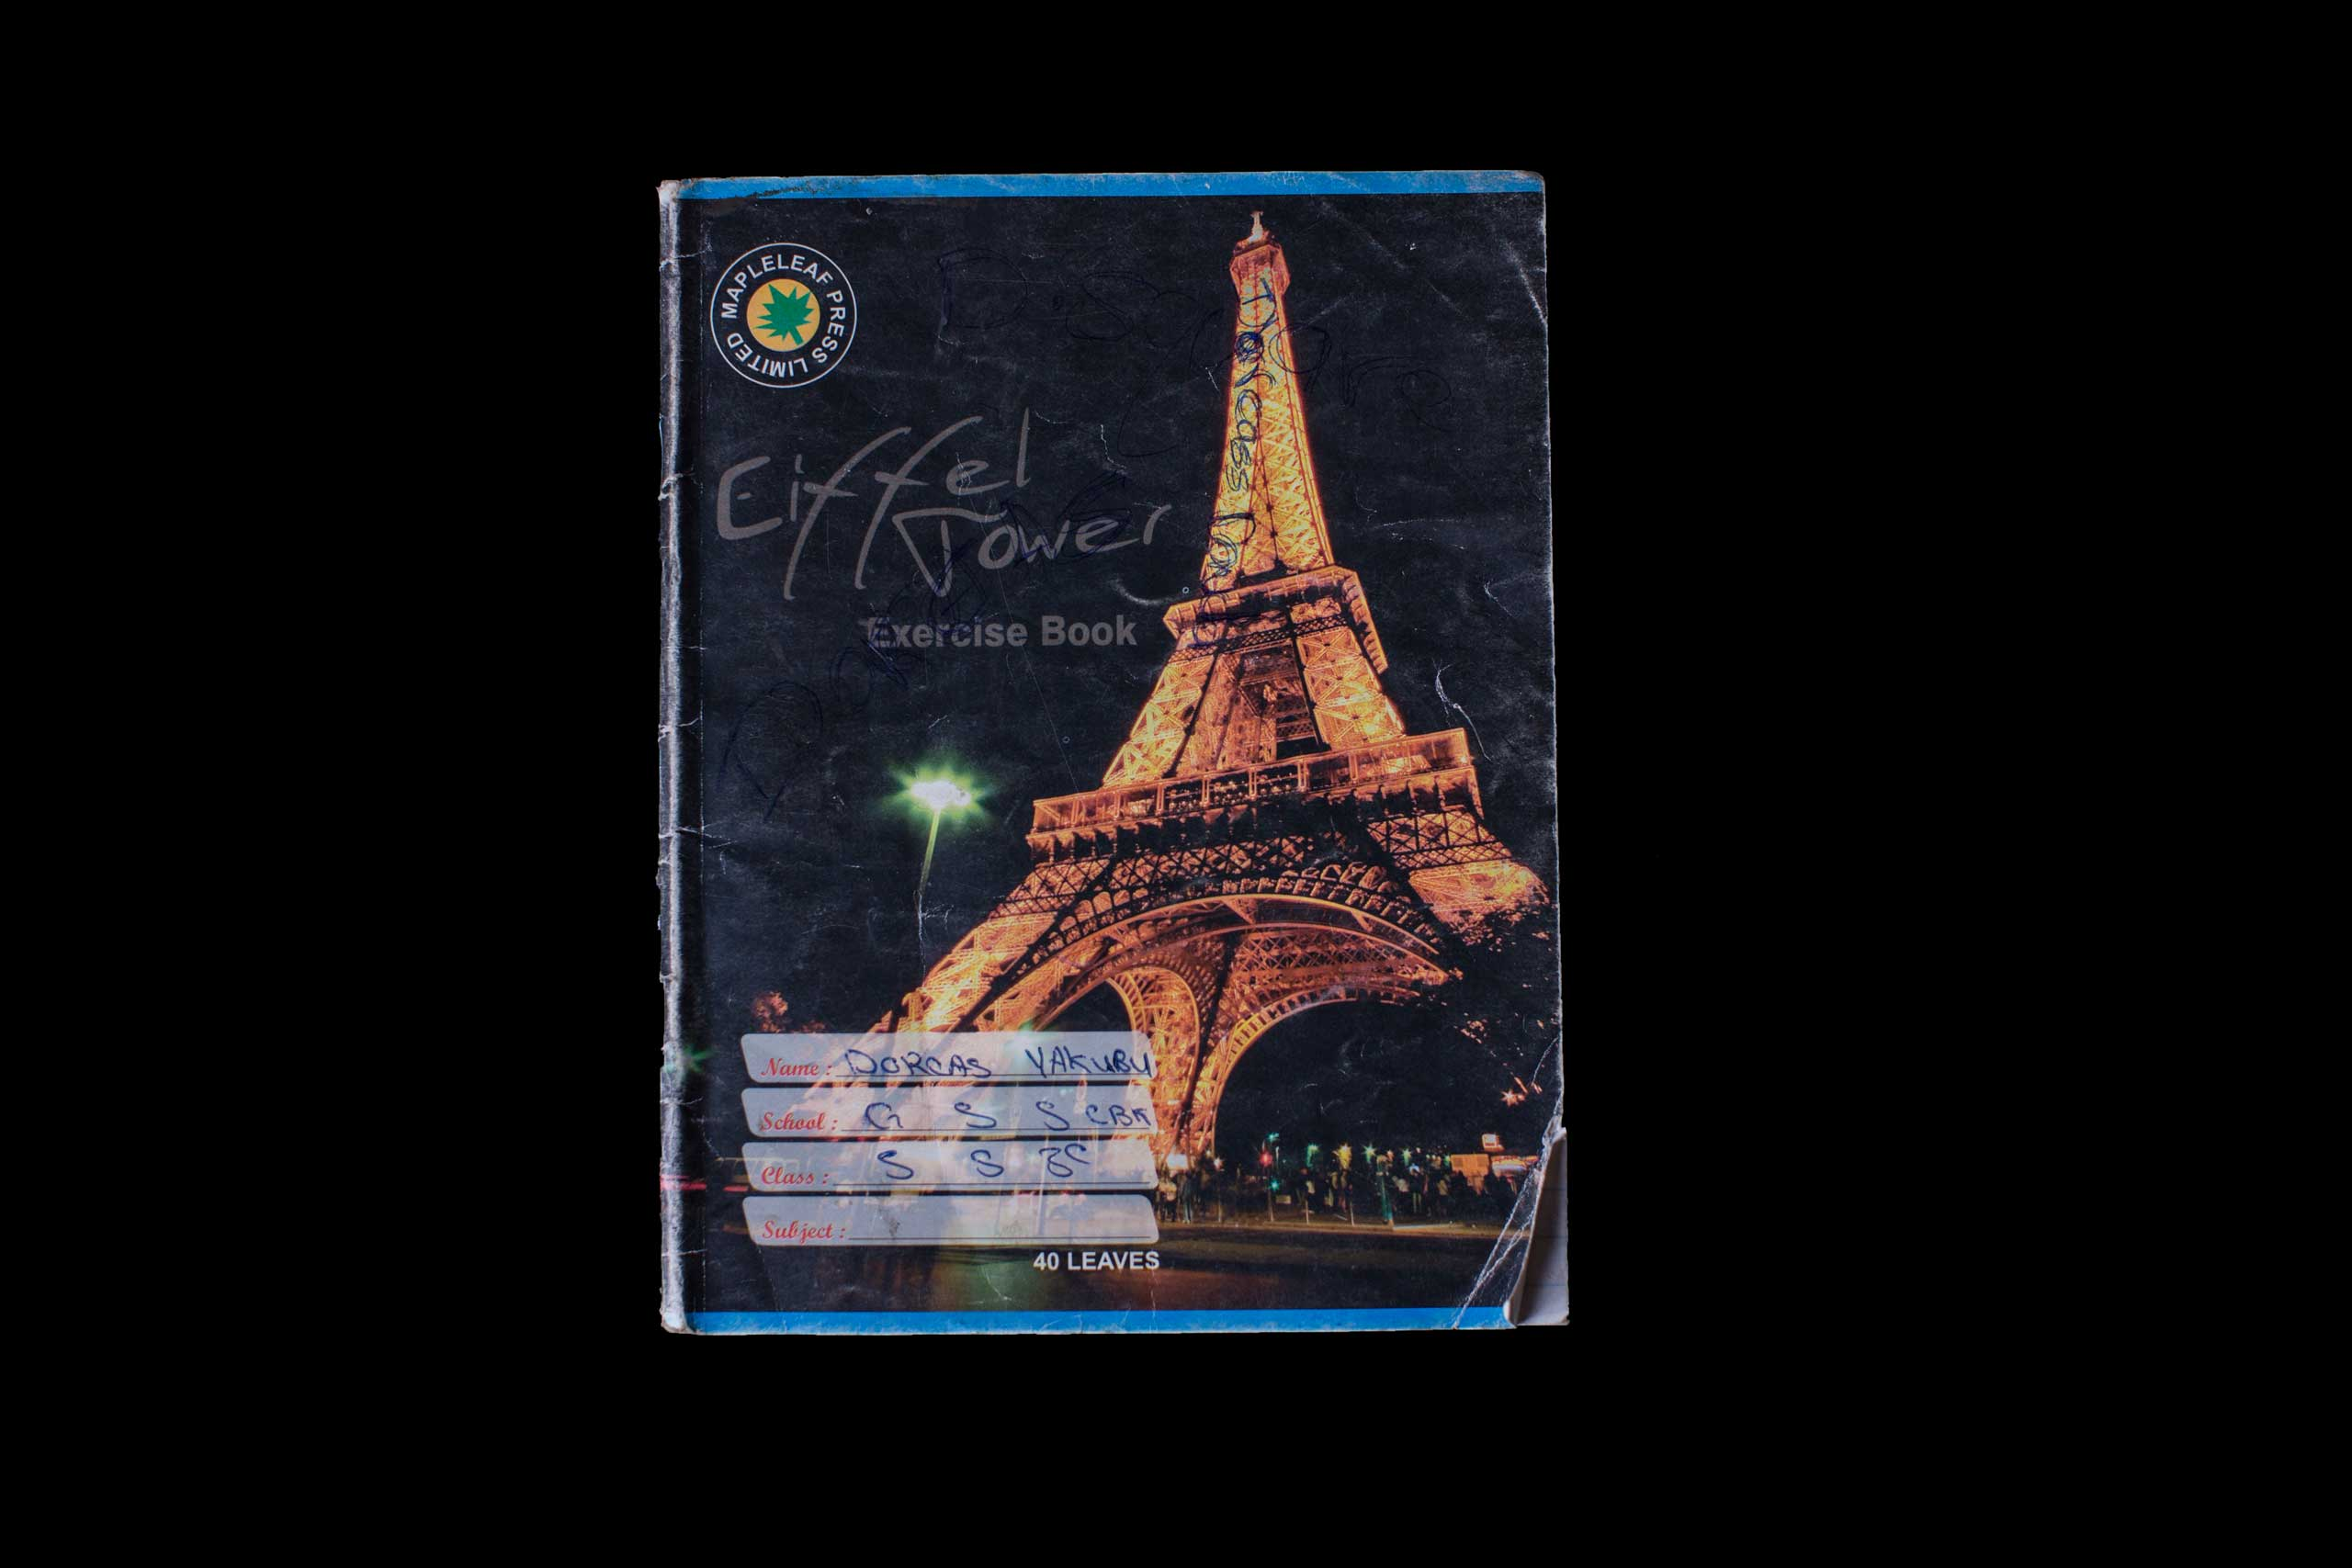 Nigerian schoolgirl notebook. Dorcas Yakubu is 16 years old. Her parents describe her as  shy girl who loved eating tuwo (a local dish). The cover of her notebook has the Eiffel Tower on it. Photo taken, Abuja, Nigeria, May 22, 2014.